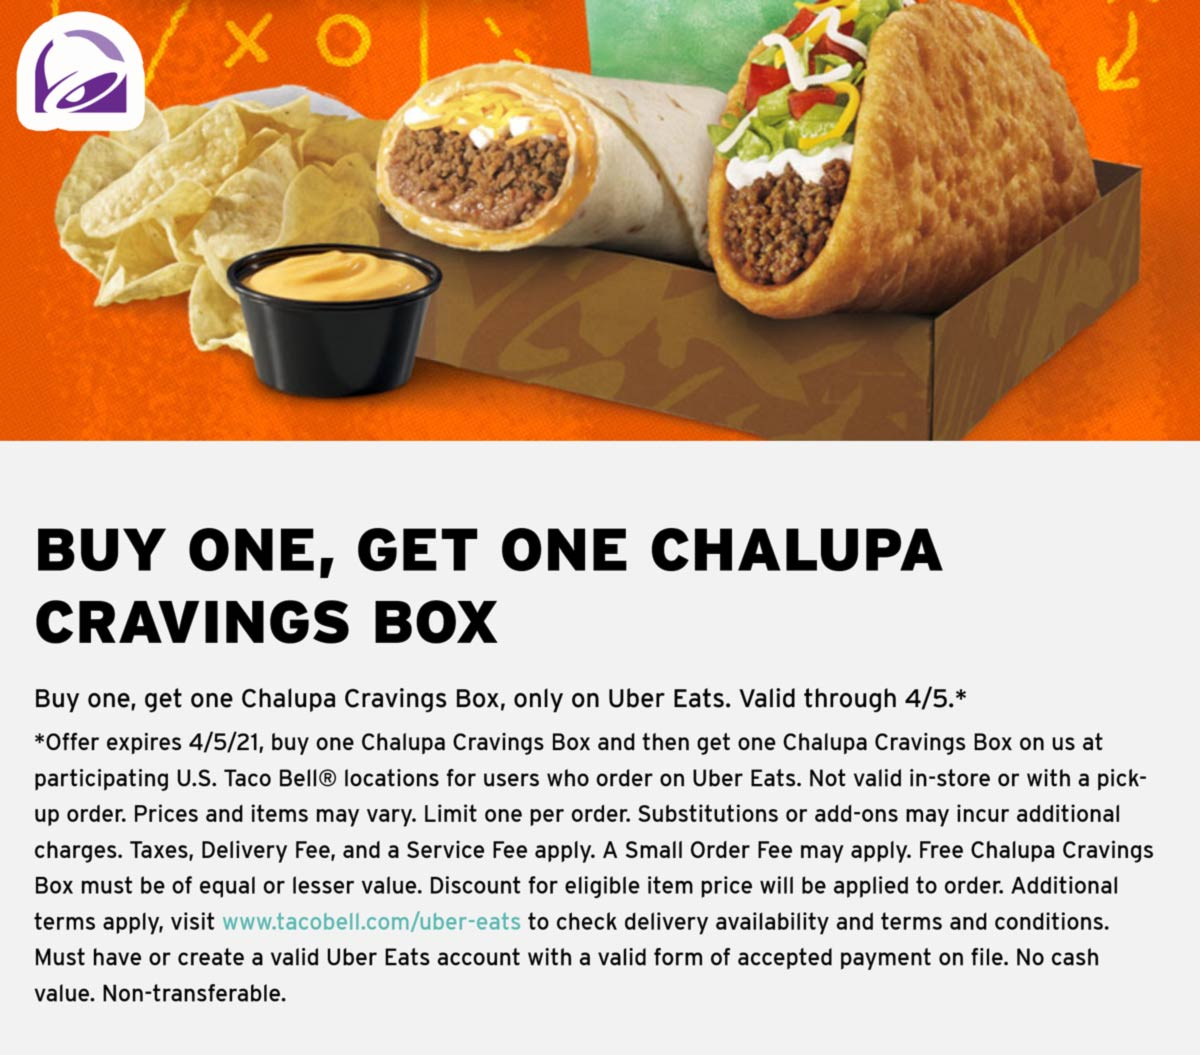 Taco Bell restaurants Coupon  Second chalupa cravings box free via delivery at Taco Bell #tacobell